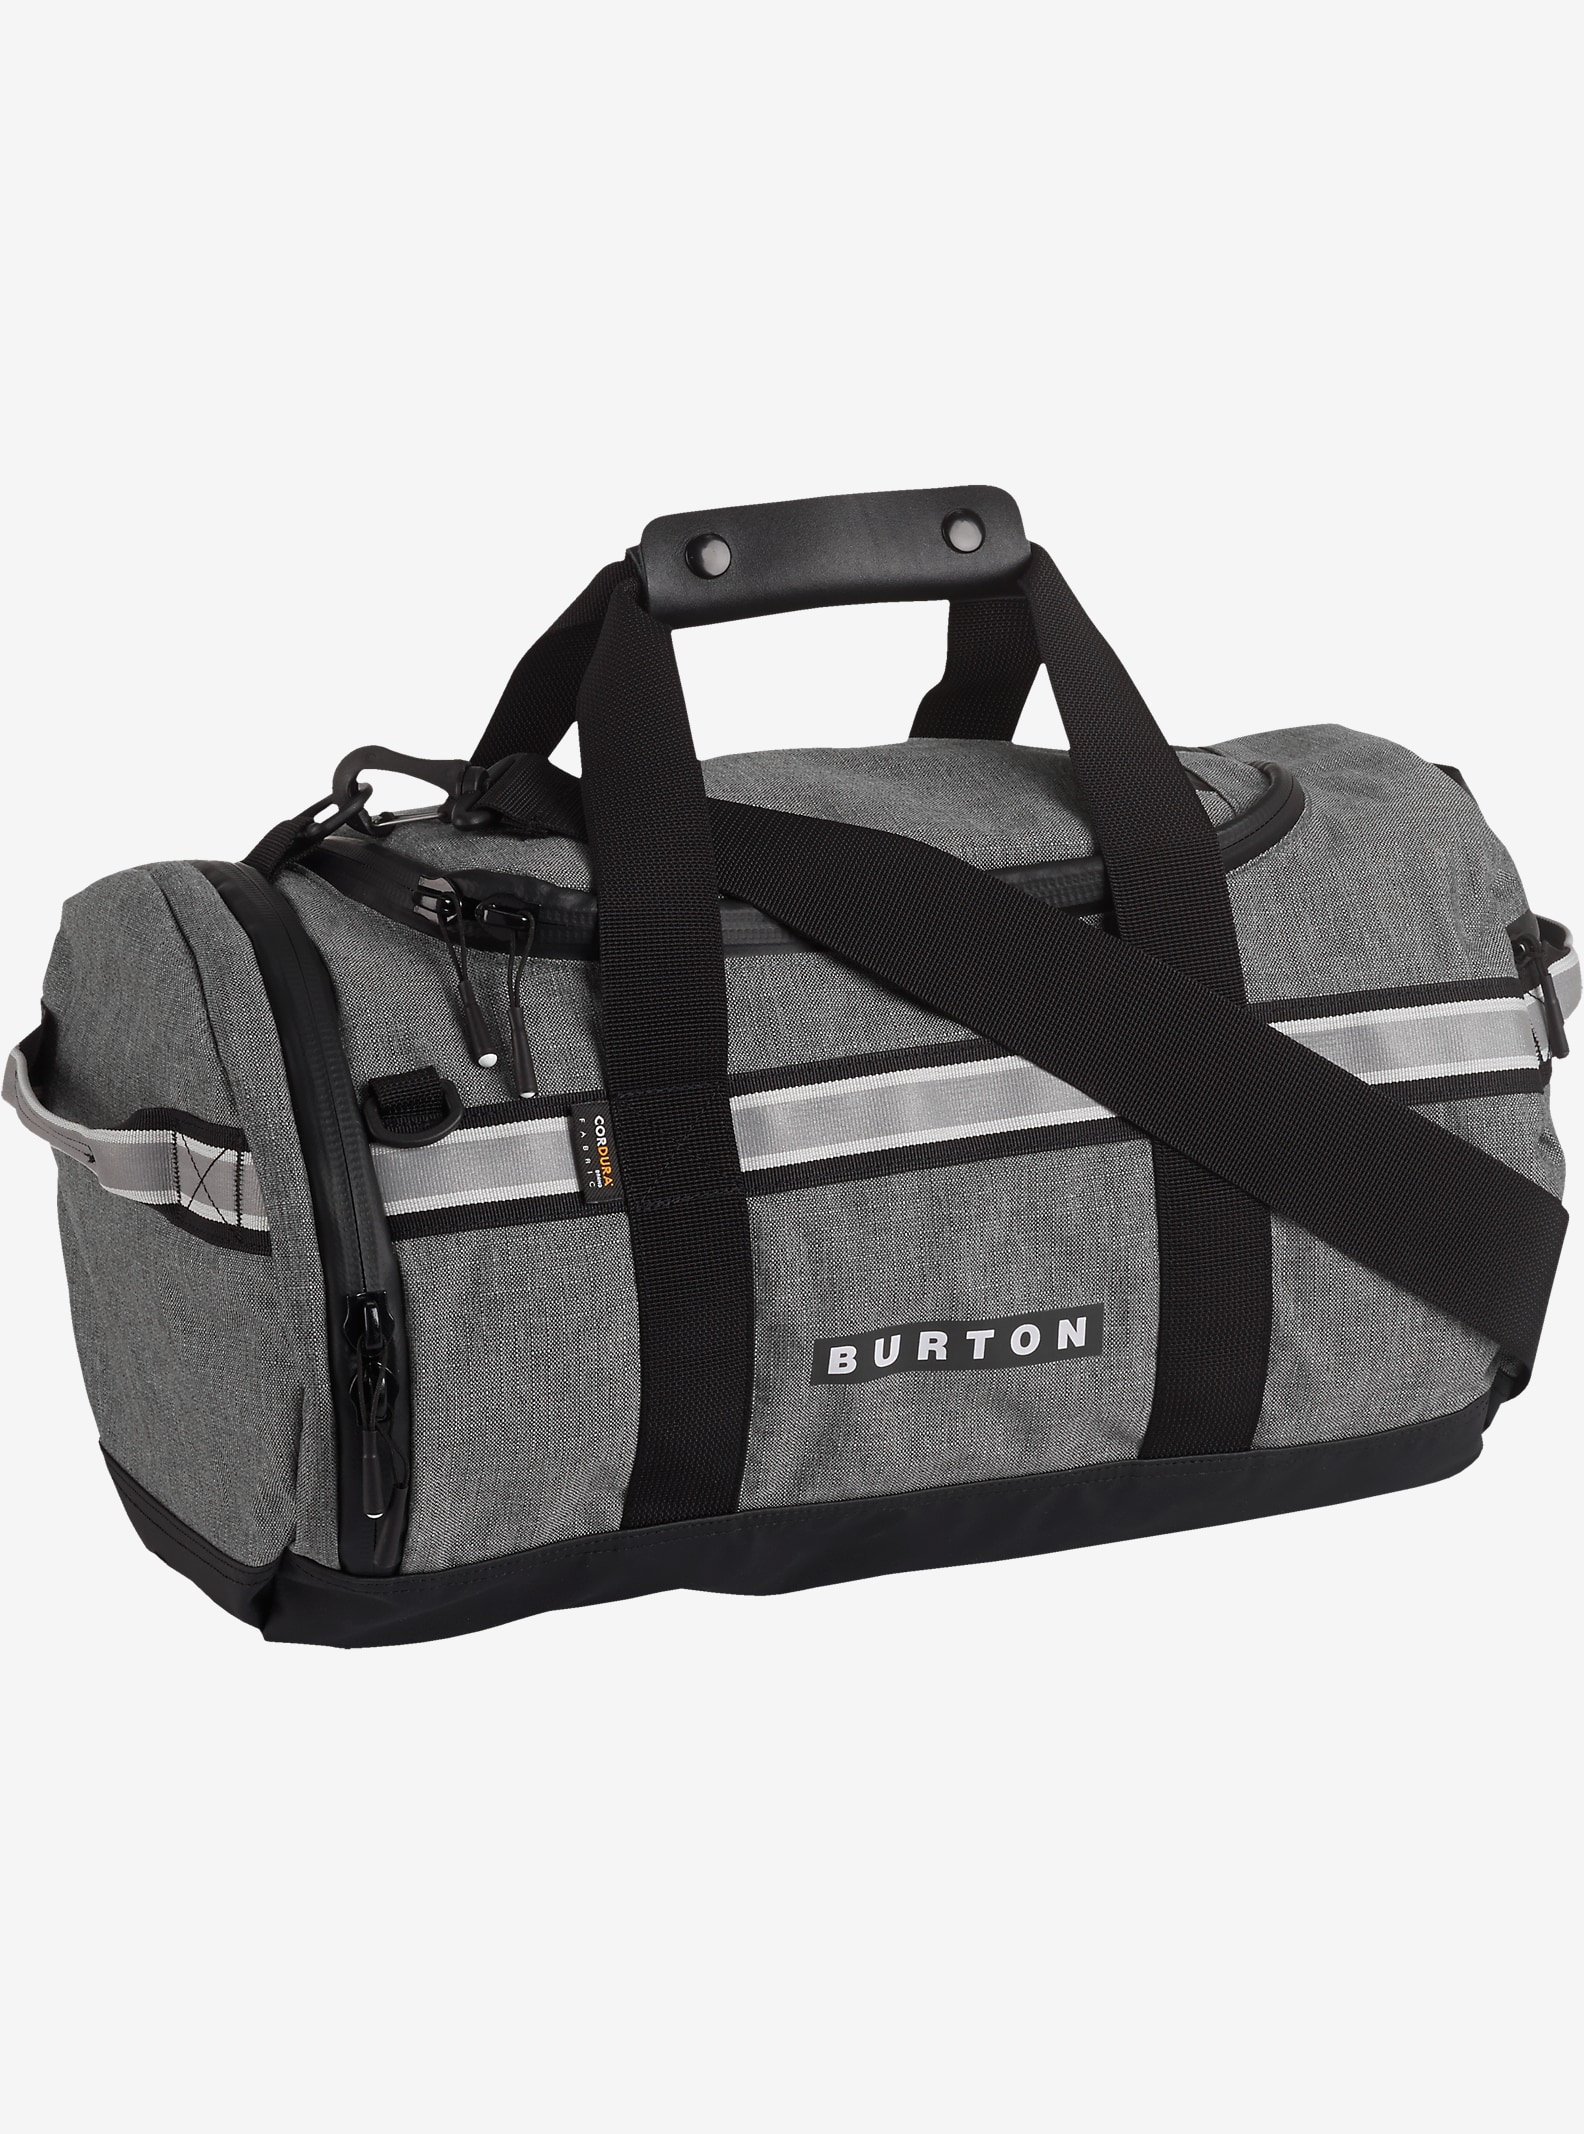 Burton Backhill Duffel Bag Extra Small 25L shown in Pelican Grey Cordura